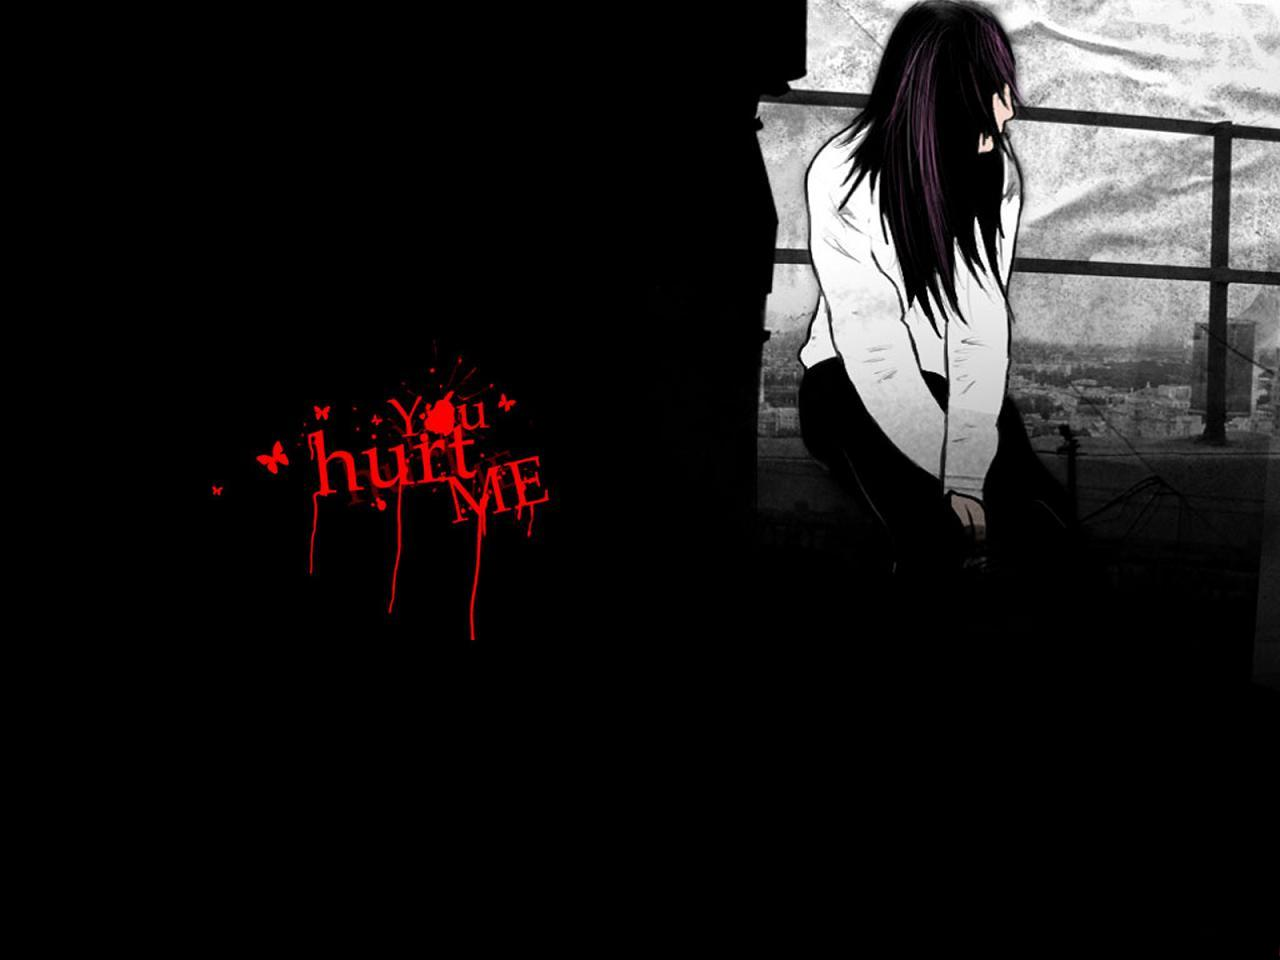 Alone Emo Girl Wallpaper Emo Wallpapers of Emo Boys and Girls 1280x960